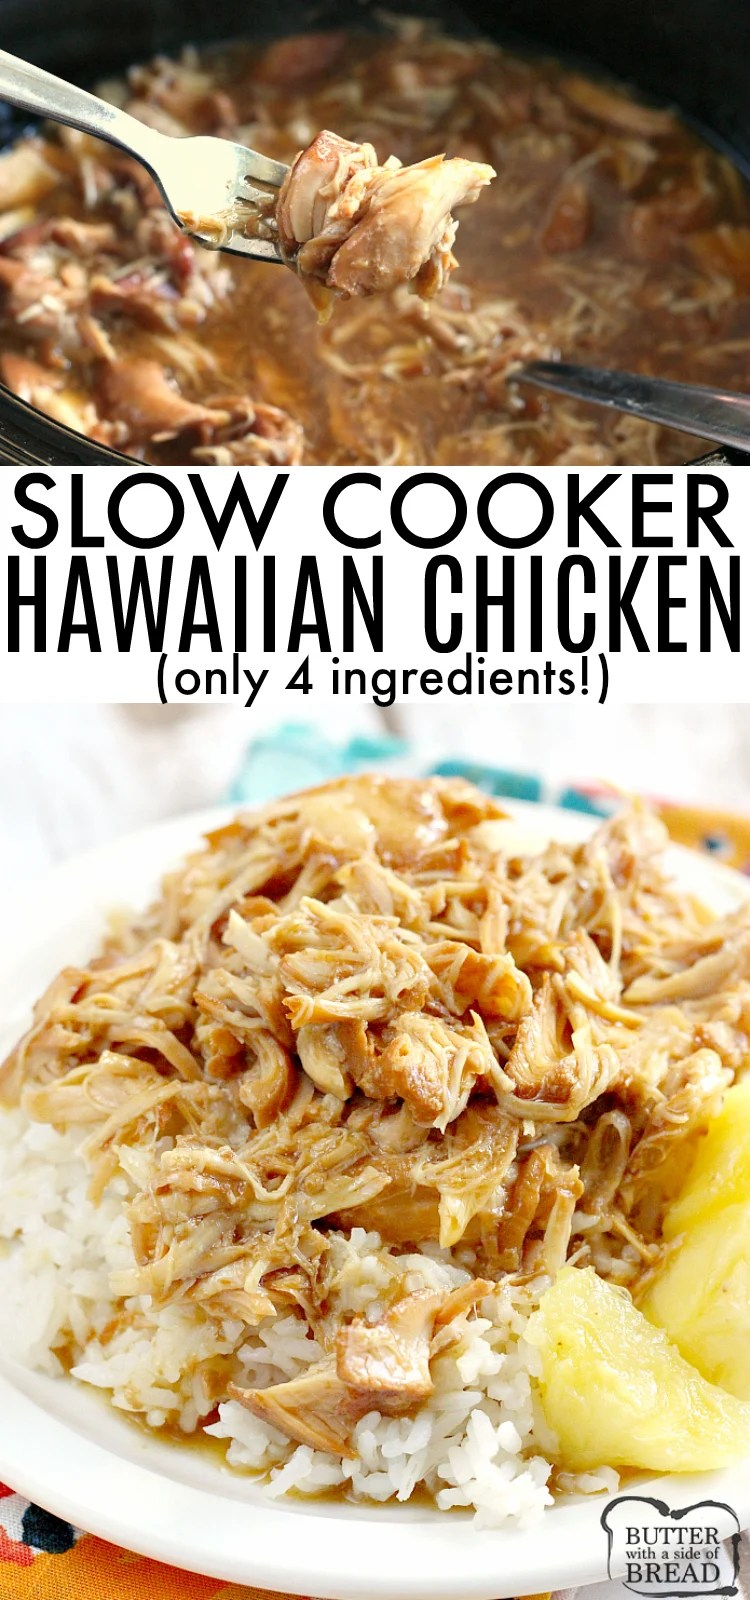 Easy Crock Pot Hawaiian Chicken is the perfect blend of sweet and savory with a delicious burst of pineapple flavor. This Hawaiian Chicken recipe only requires 4 ingredients and results in fork tender chicken that falls apart when it's ready!